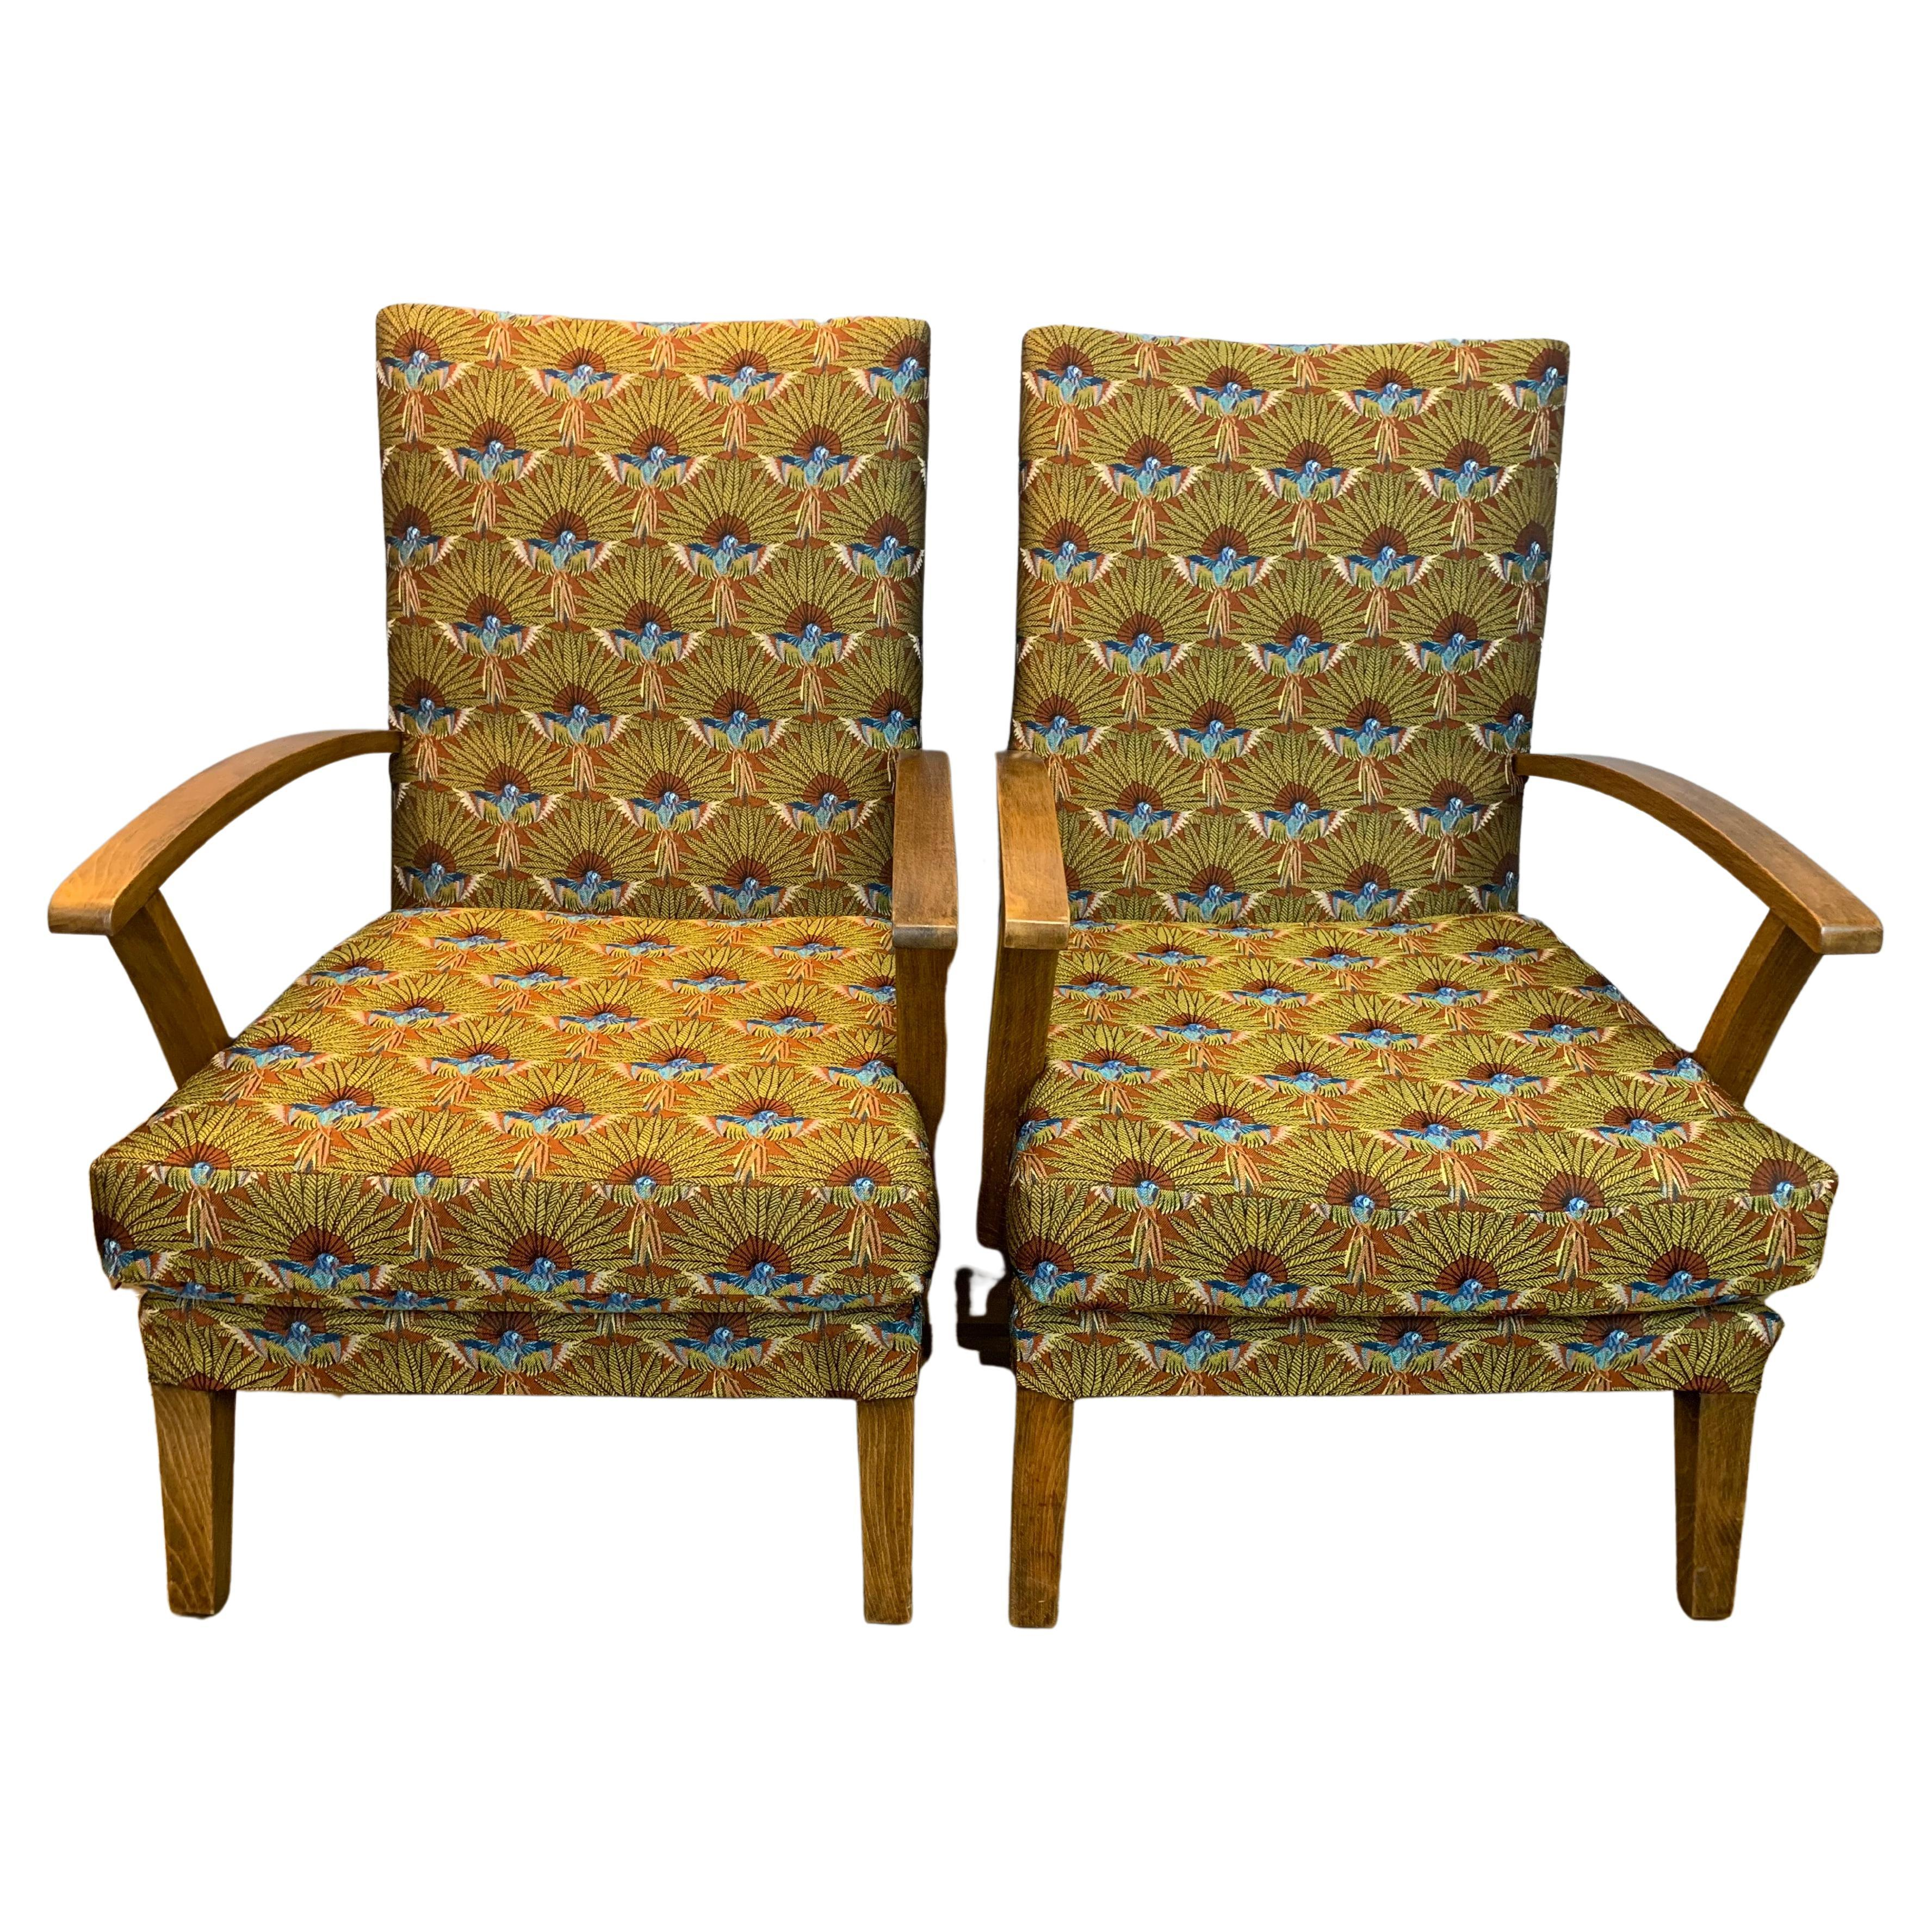 Pair of 1940s English Utility Armchairs Upholstered in Tropical Paradise Fabric